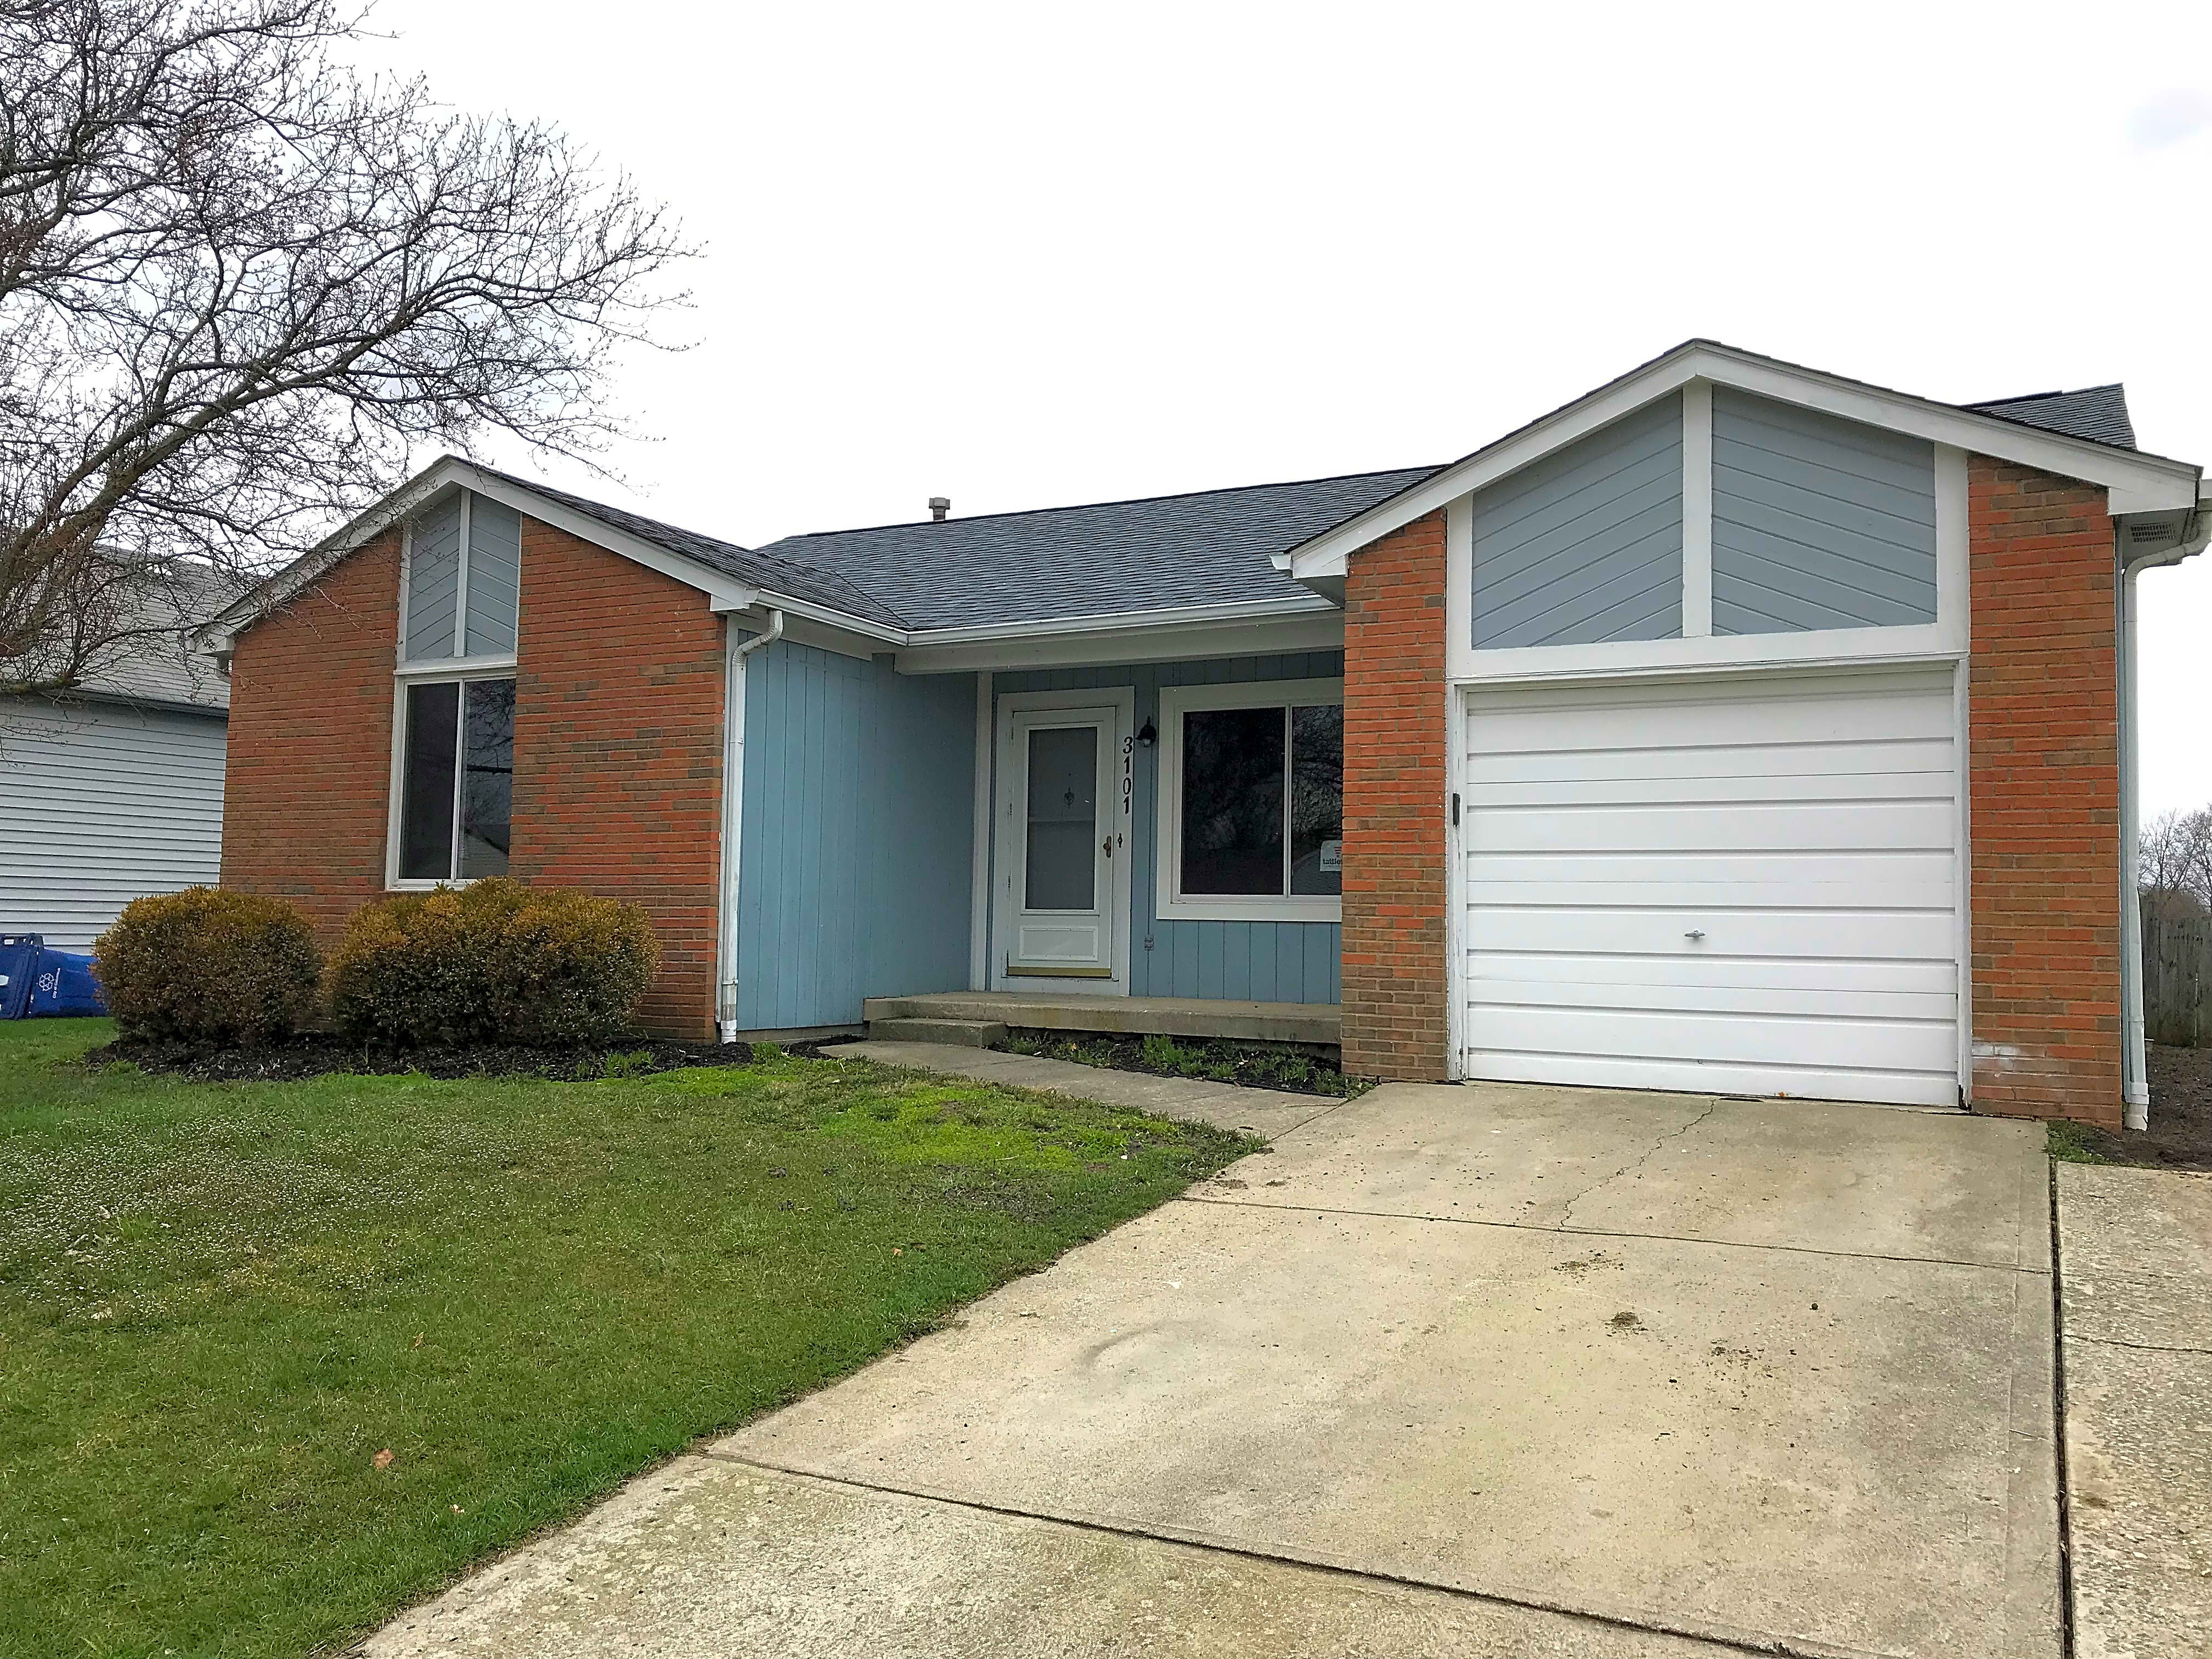 Remodeled 3 Bedroom Ranch With Finished Basement Apartments Columbus Oh 43232